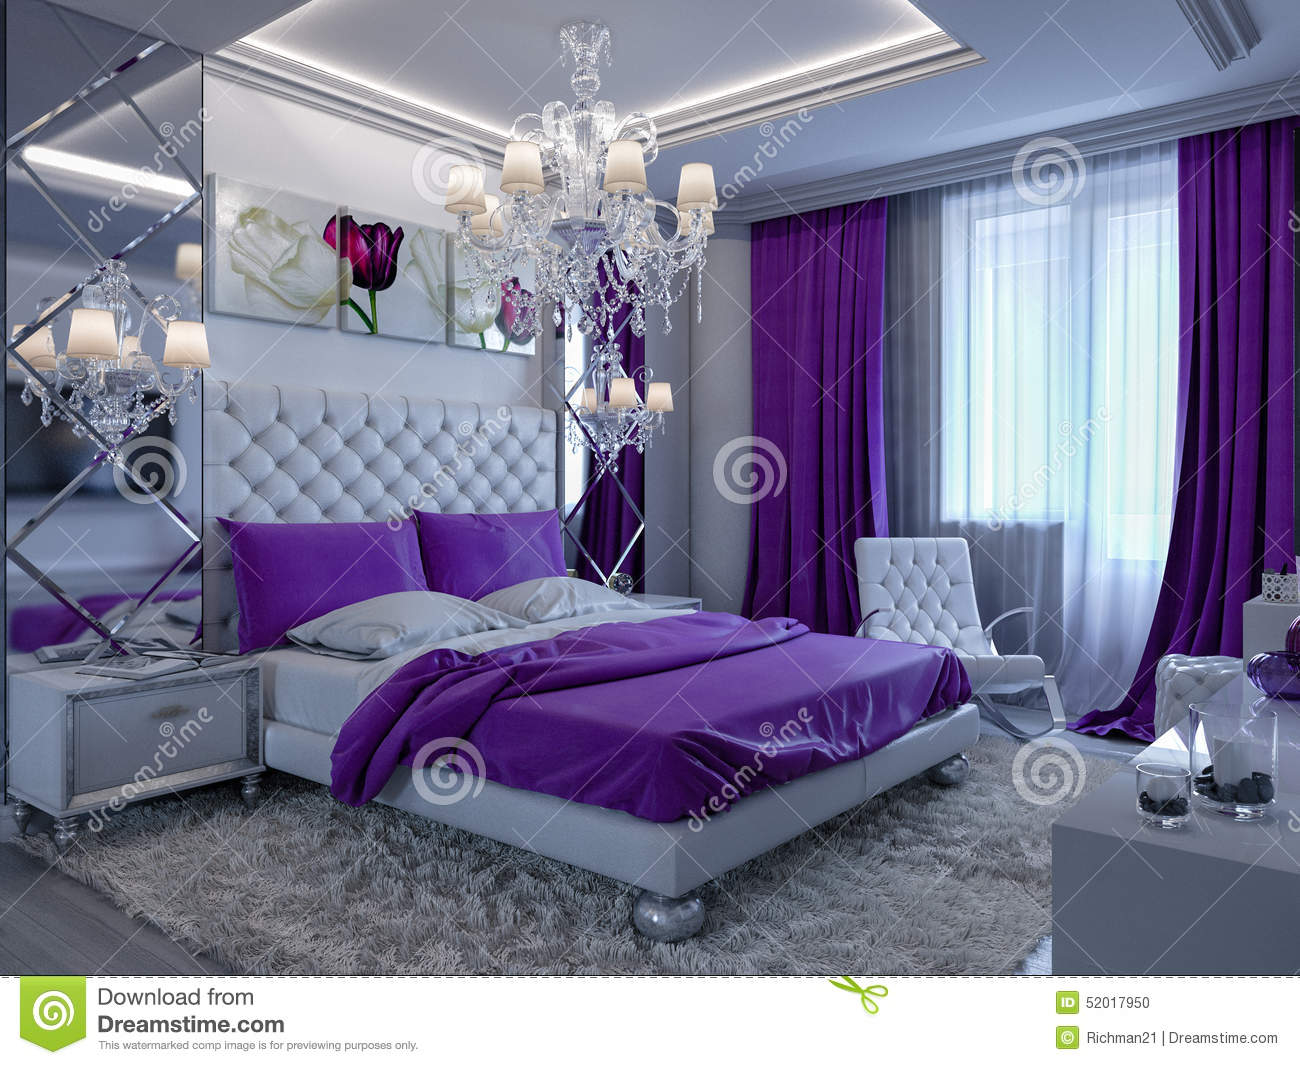 3d Rendering Bedroom In Gray And White Tones With Purple Accents Stock Illust